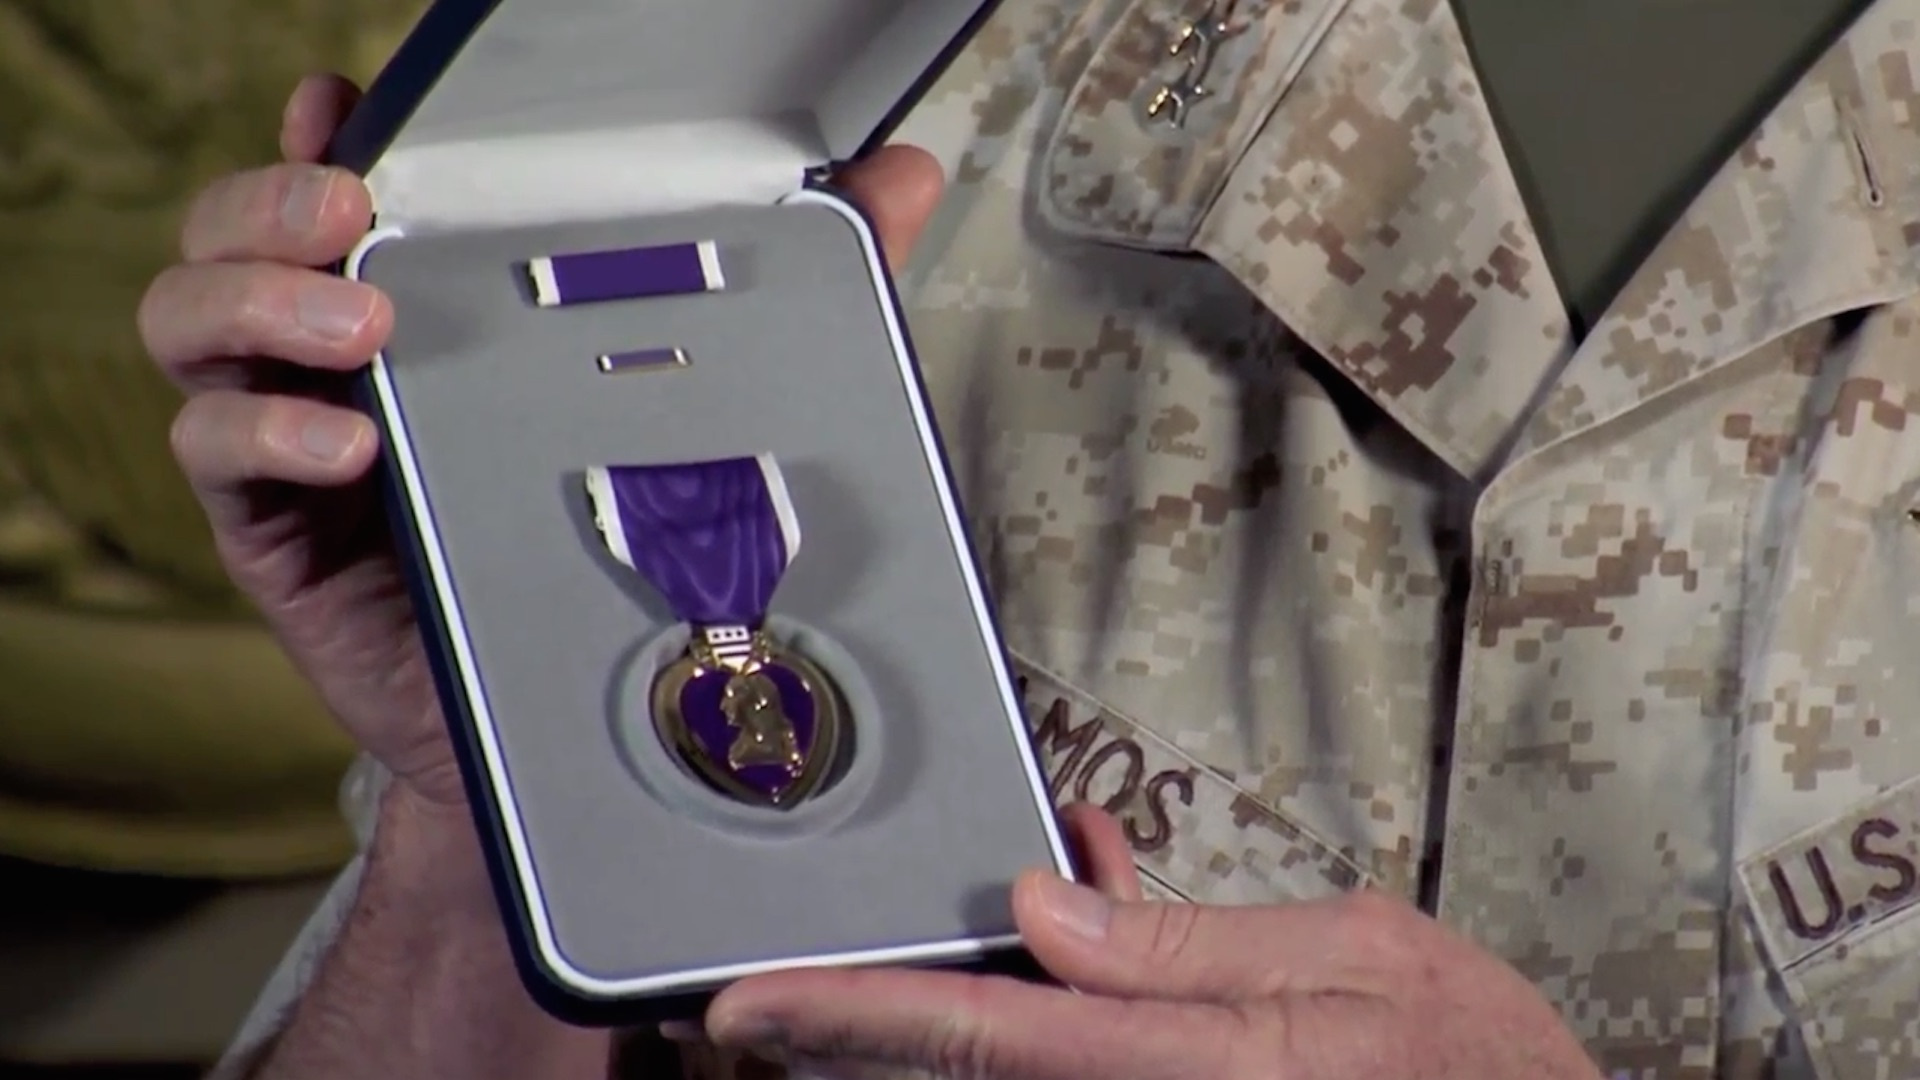 'He hurt the heroes': The Iraq War veteran who lied his way to a Purple Heart and $750,000